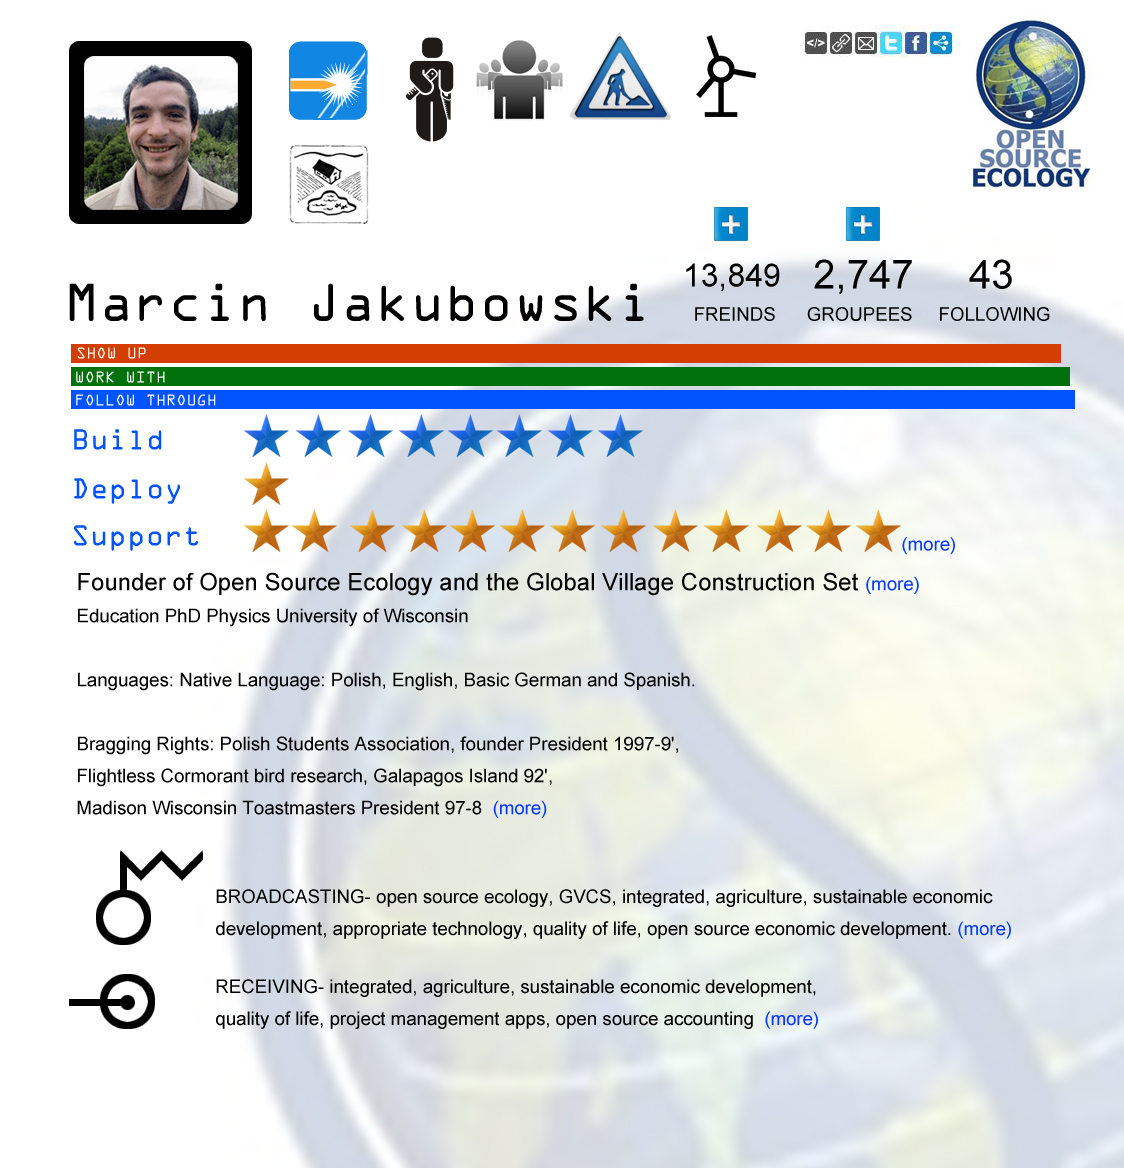 Mock-up-Open-Source-Ecology-profile-001.jpg